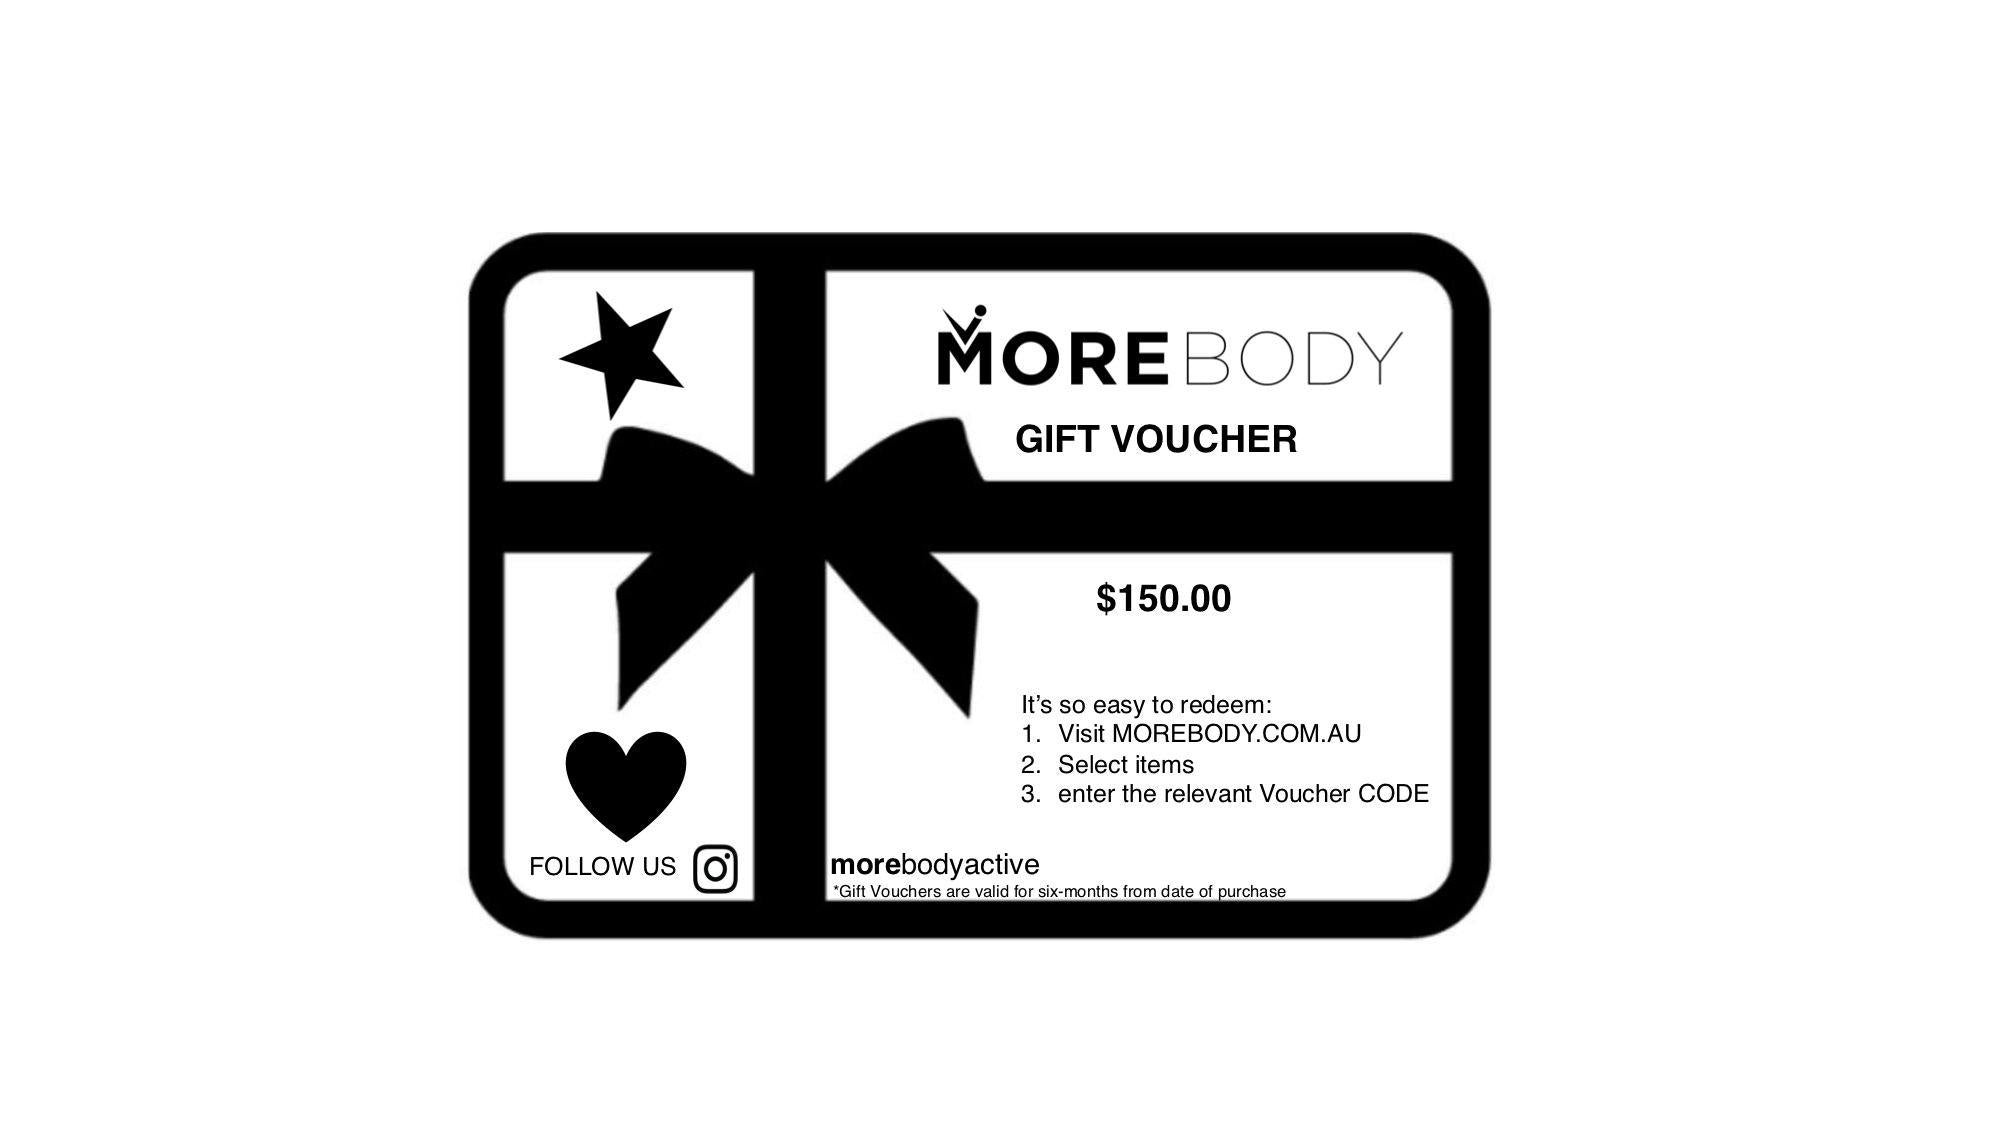 Gift Voucher $150.00 - More Body